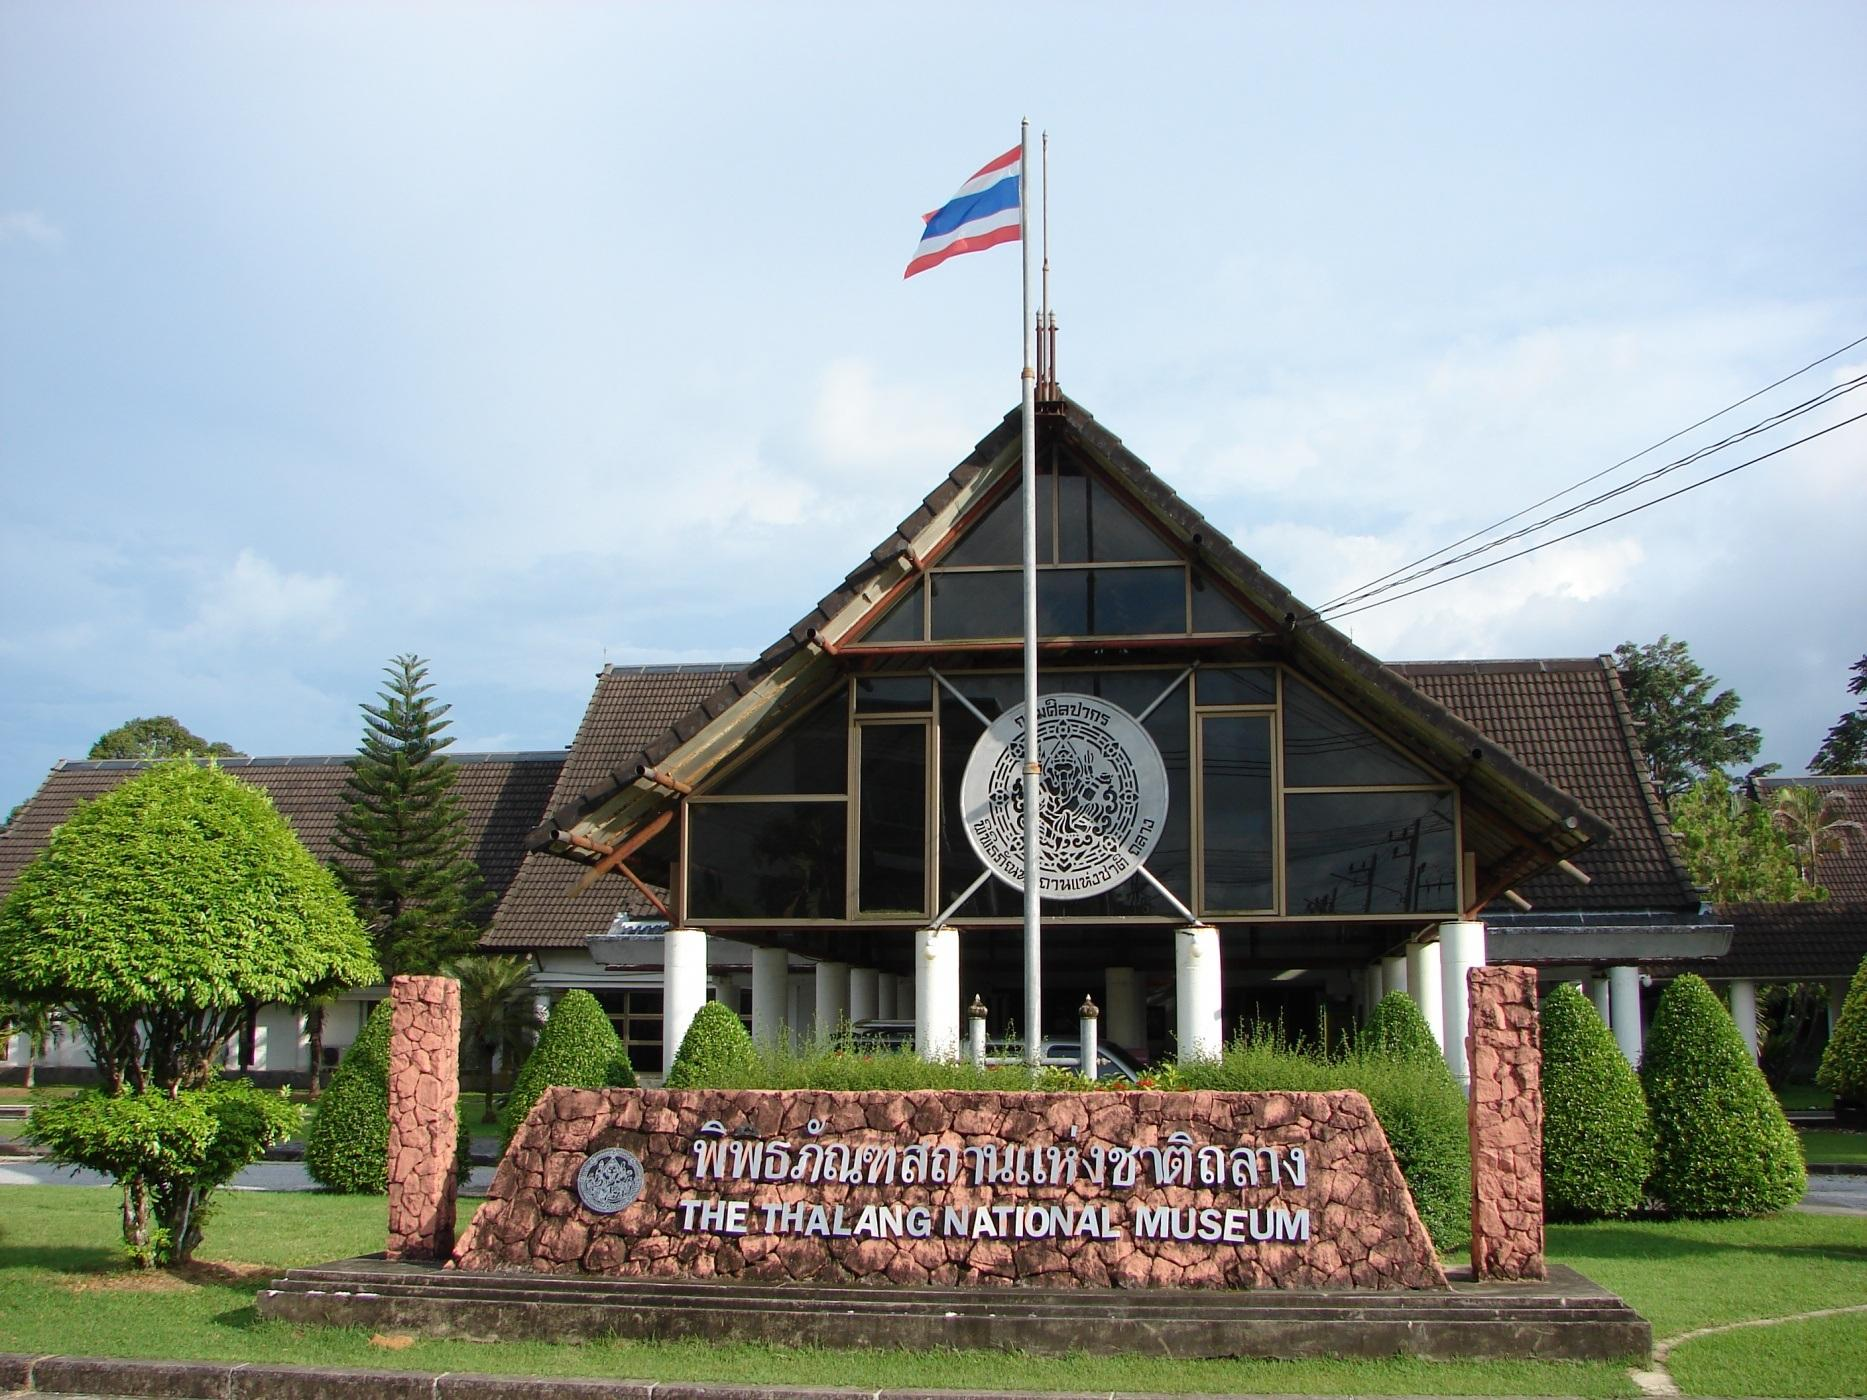 Музей Таланга (Thalang National Museum), Пхукет